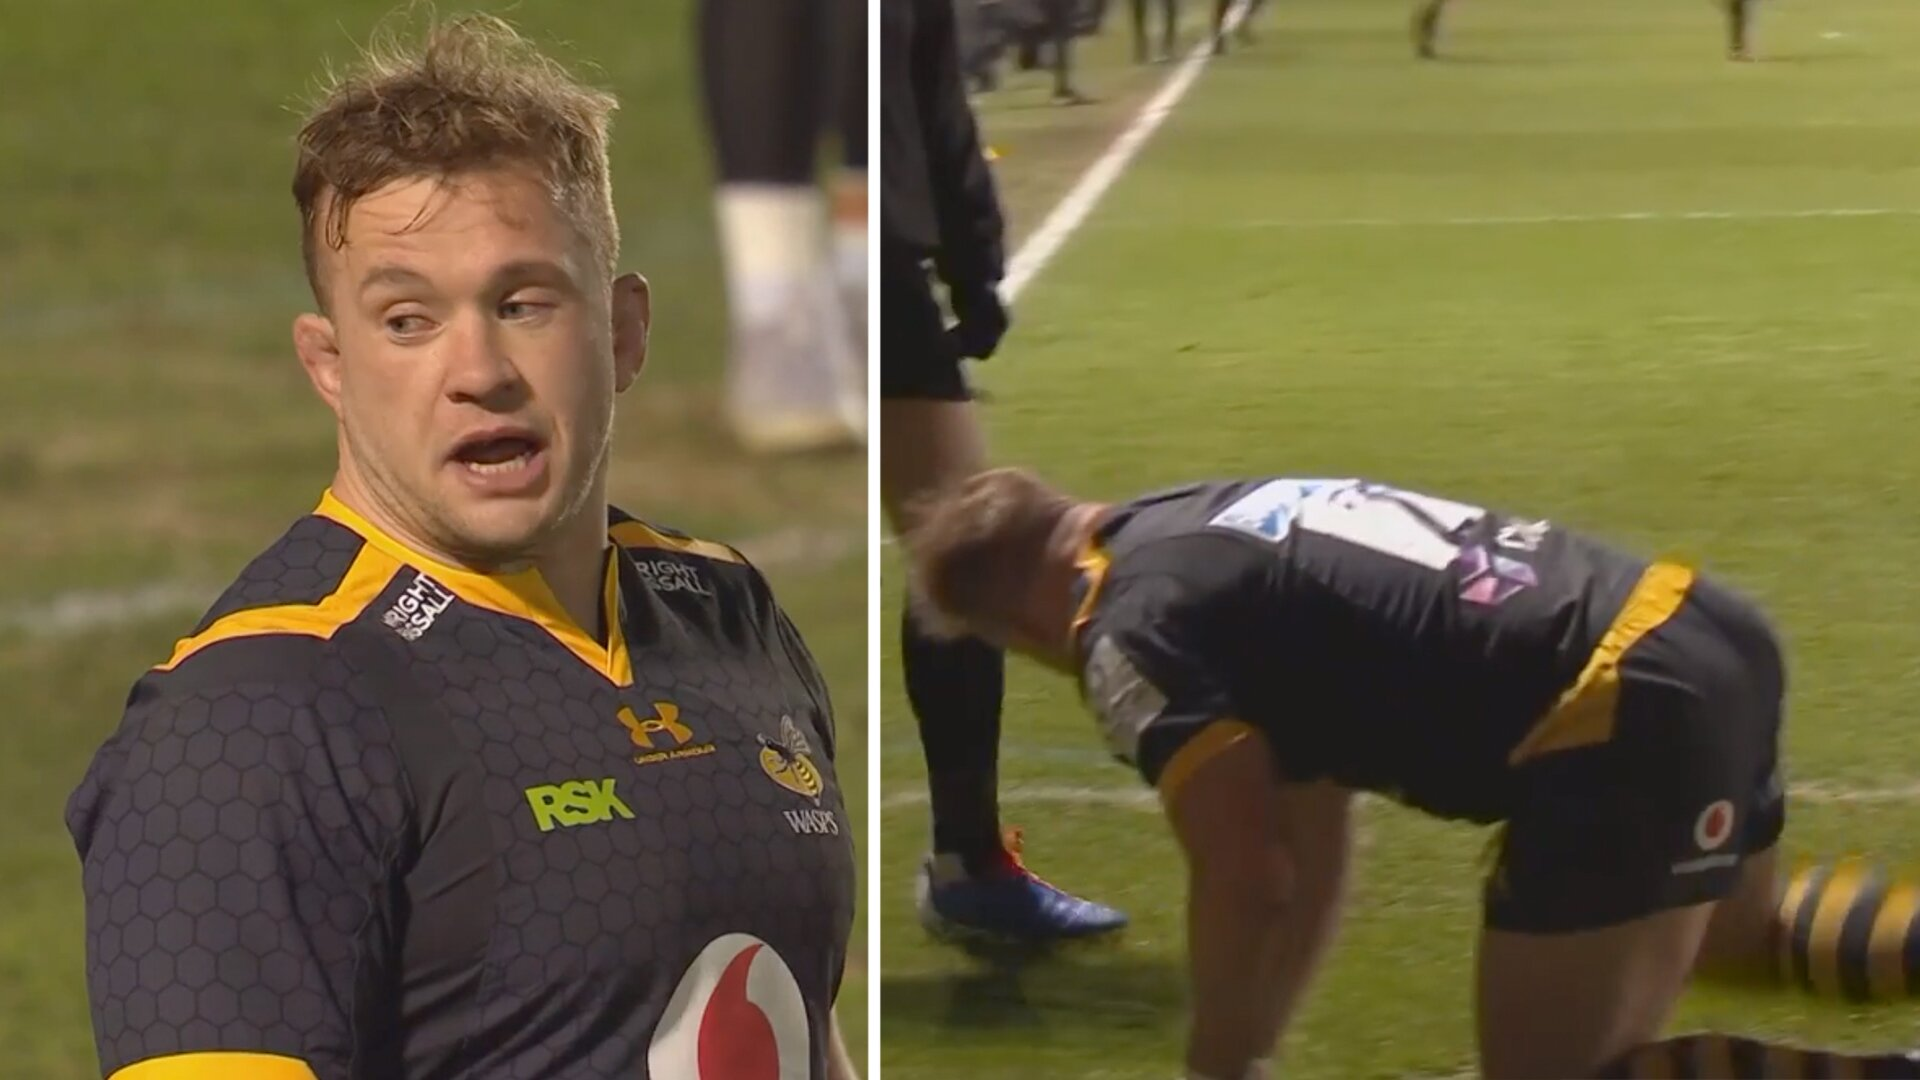 Wasps hooker receives flak on social media for his bizarre try celebration